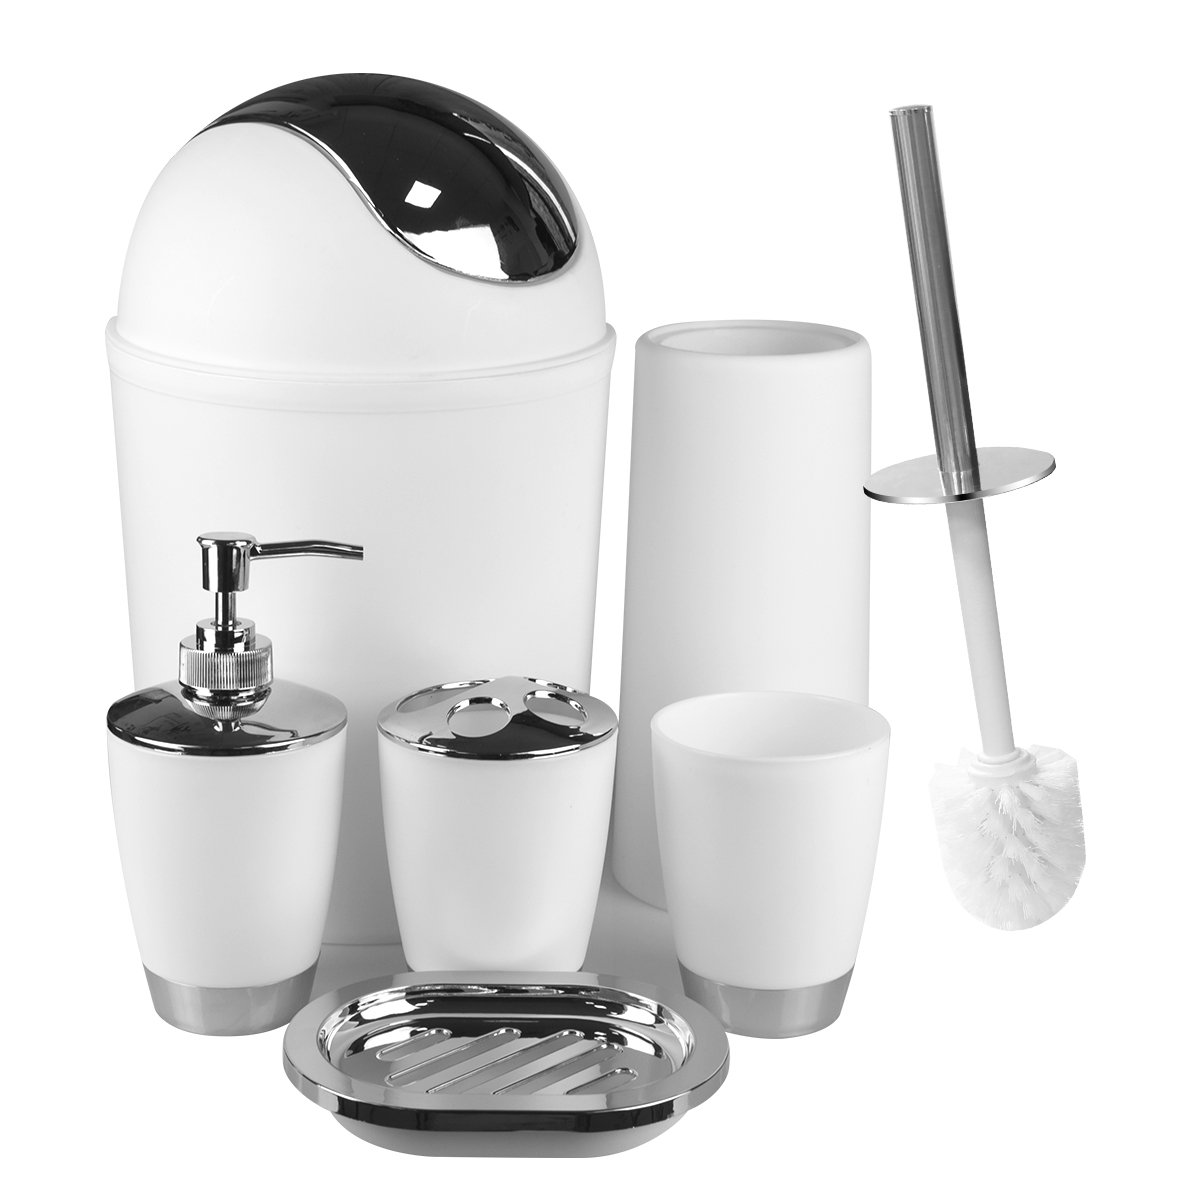 White Bathroom Accessories Set 6 Pieces Plastic Bathroom Accessories Toothbrush Holder, Rinse Cup, Soap Dish, Hand Sanitizer Bottle, Waste Bin, Toilet Brush with Holder by Aneforall (Image #1)